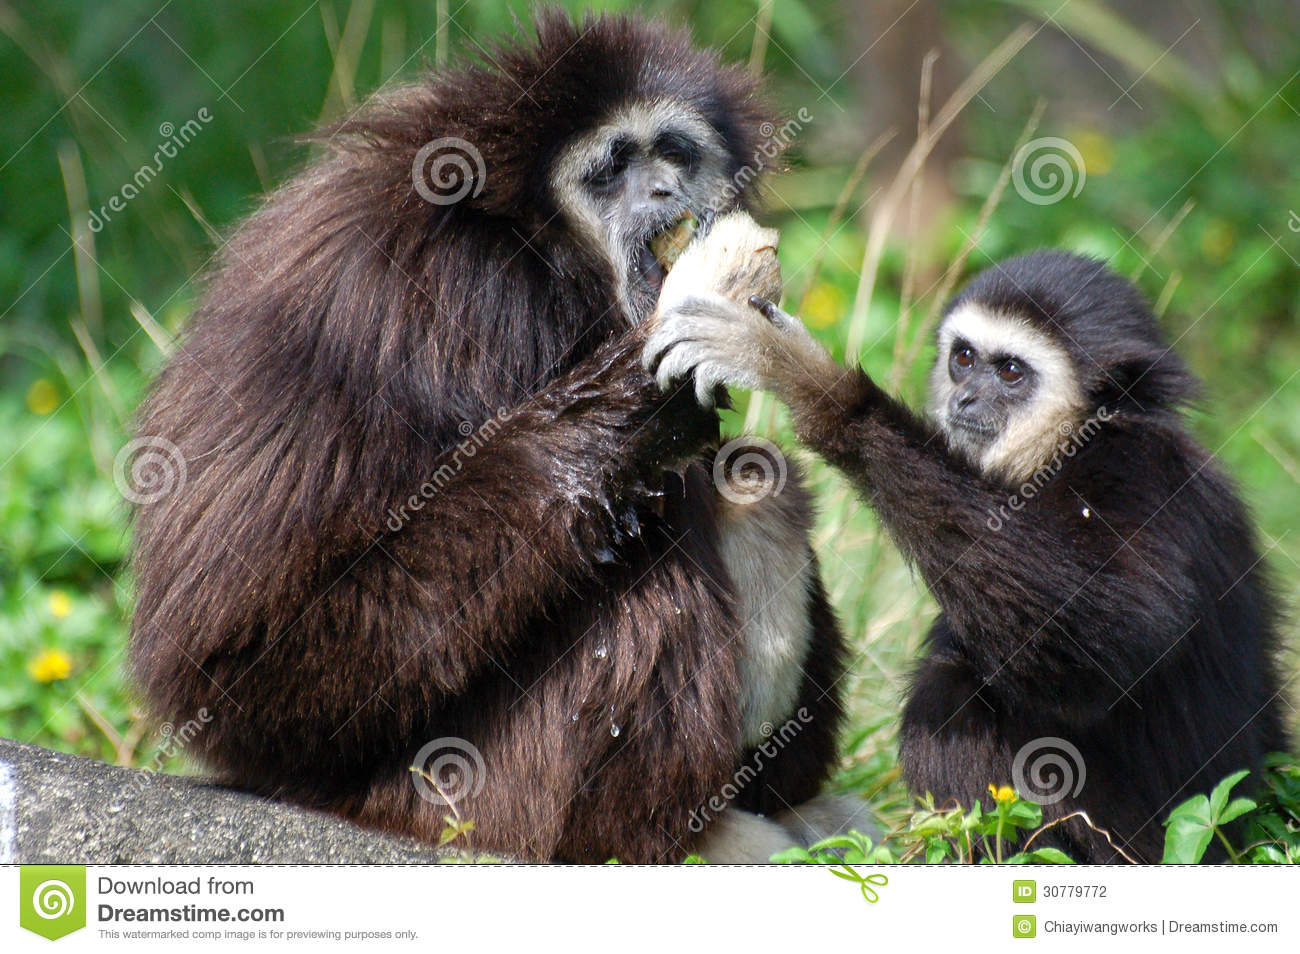 Two monkeys hoping to grab